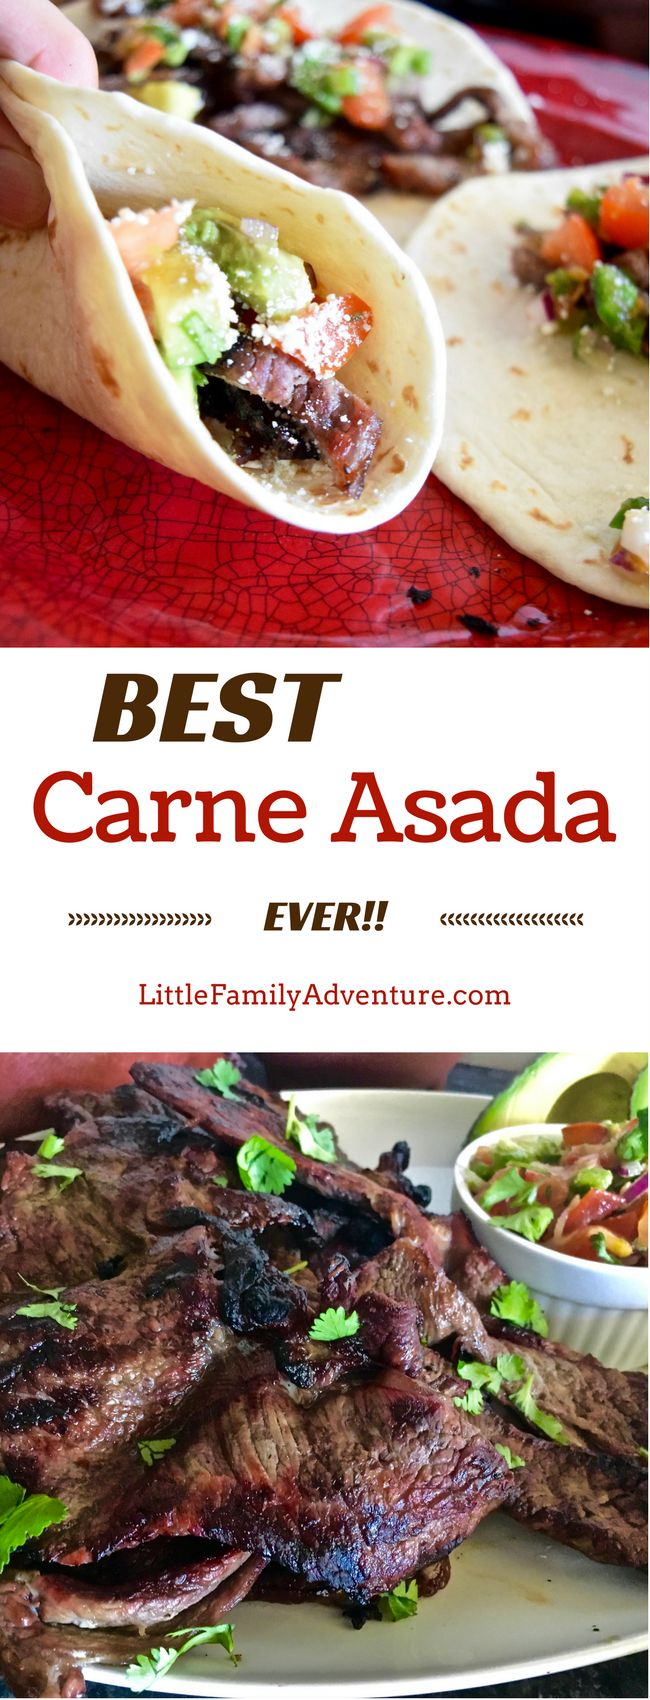 Looking for a quick and easy grilled carne asada recipe? Try the Best Carne Asada Recipe Ever! Restaurant quality carne asada perfect for tacos, burritos, nachos, salads, etc. fabulous for family dinner or for crowds! It's so easy that you'll never bother